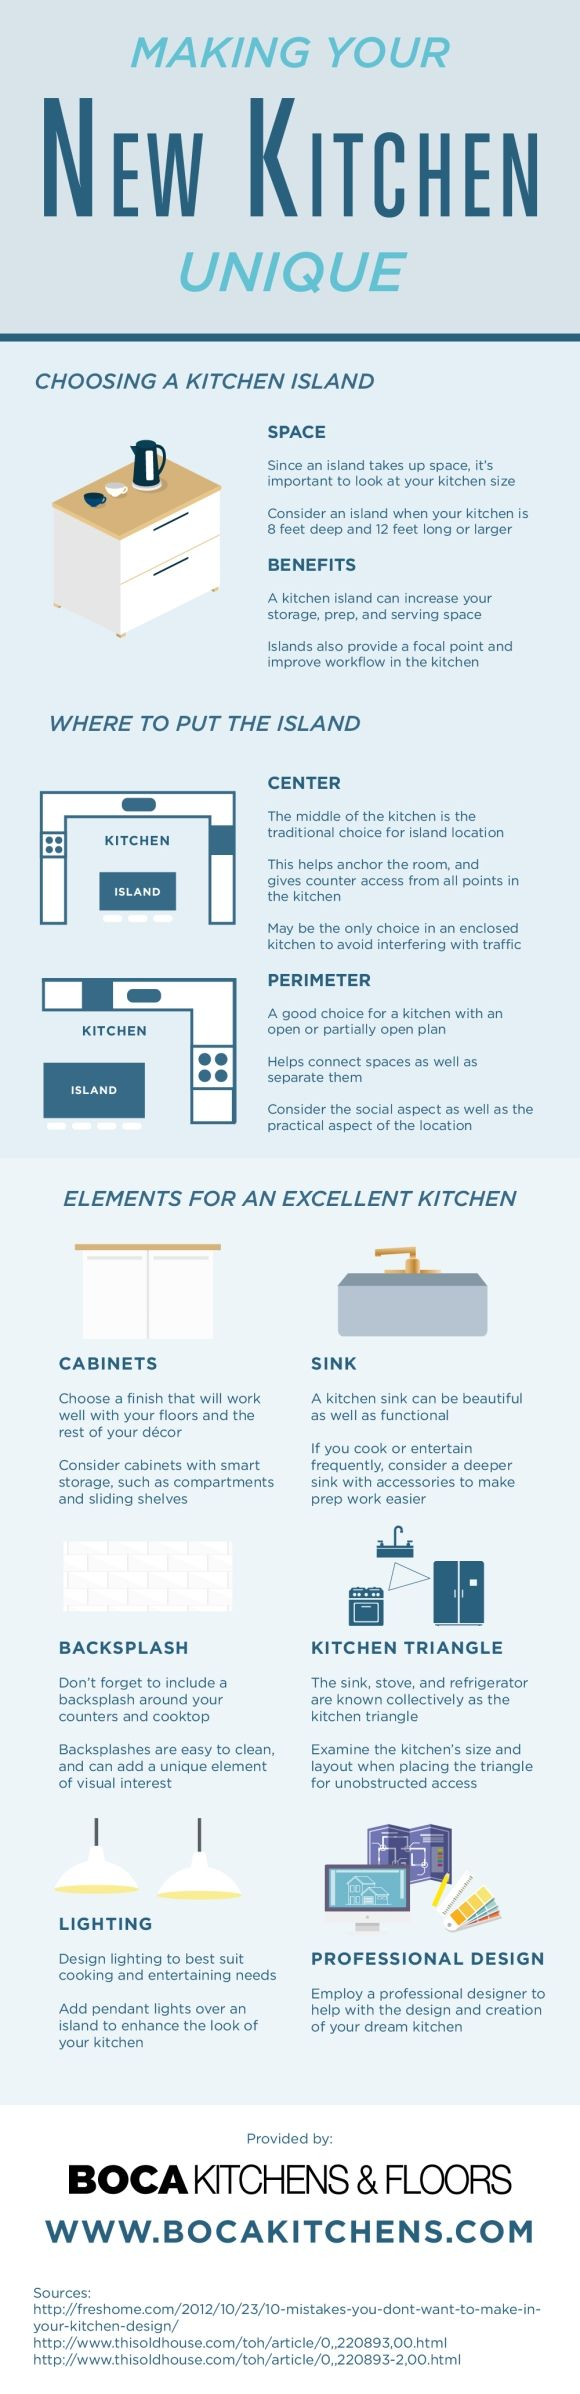 If you re interested in remodeling your home contact us to learn - In Addition To Being Aesthetically Appealing Your Kitchen Island Can Offer Valuable Storage Space Look At This Infographic If You Are Interested In Making